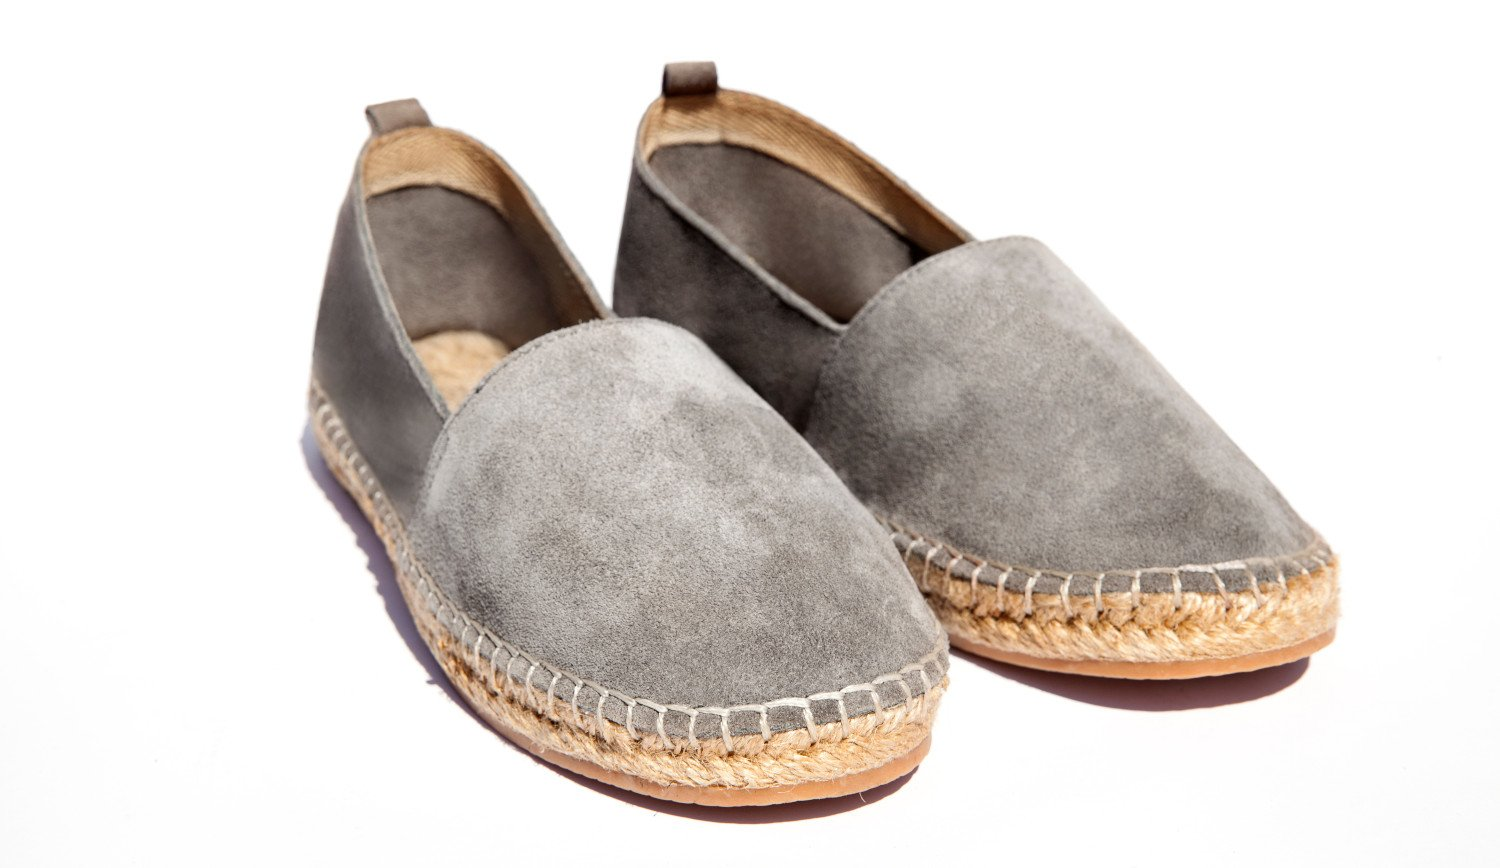 A pair of espadrille shoes